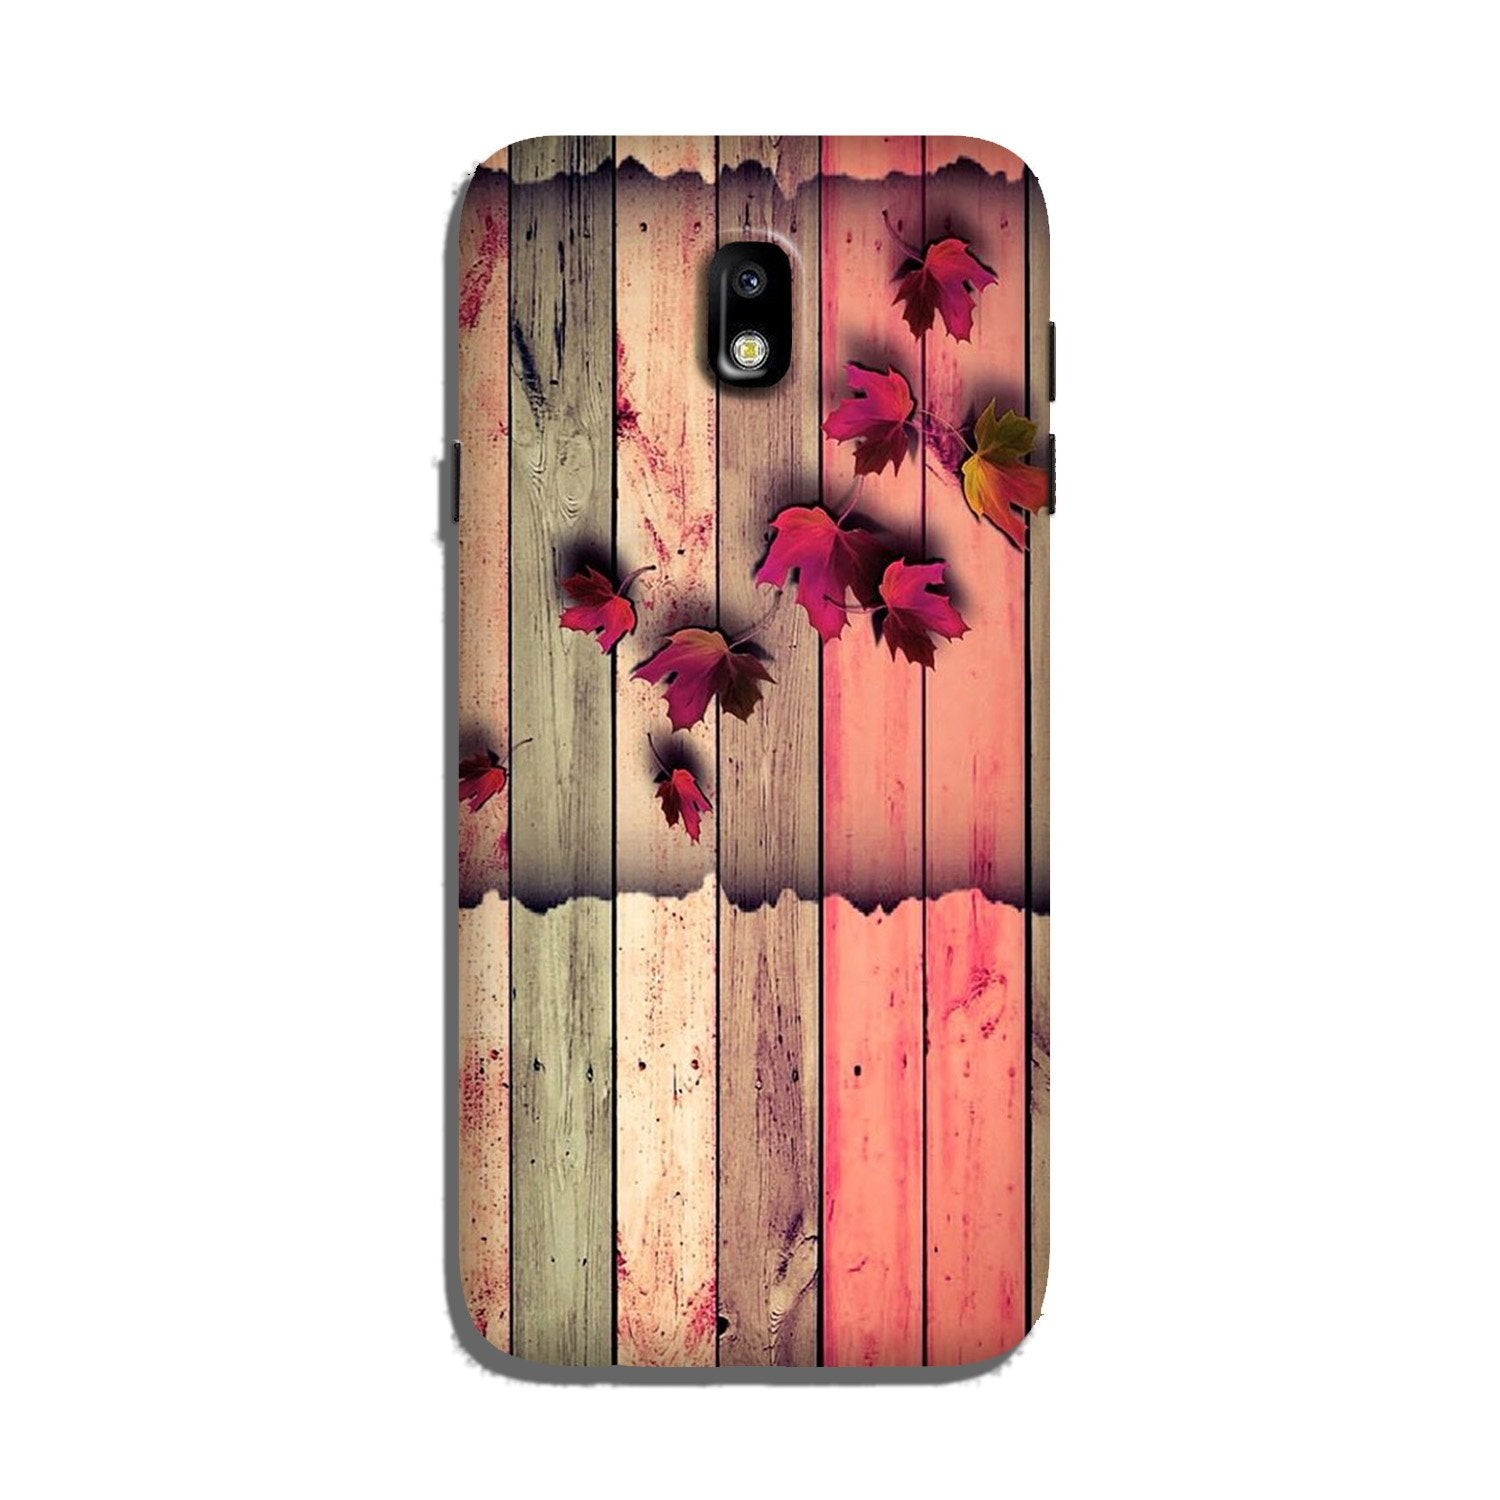 Wooden look2 Case for Galaxy J5 Pro